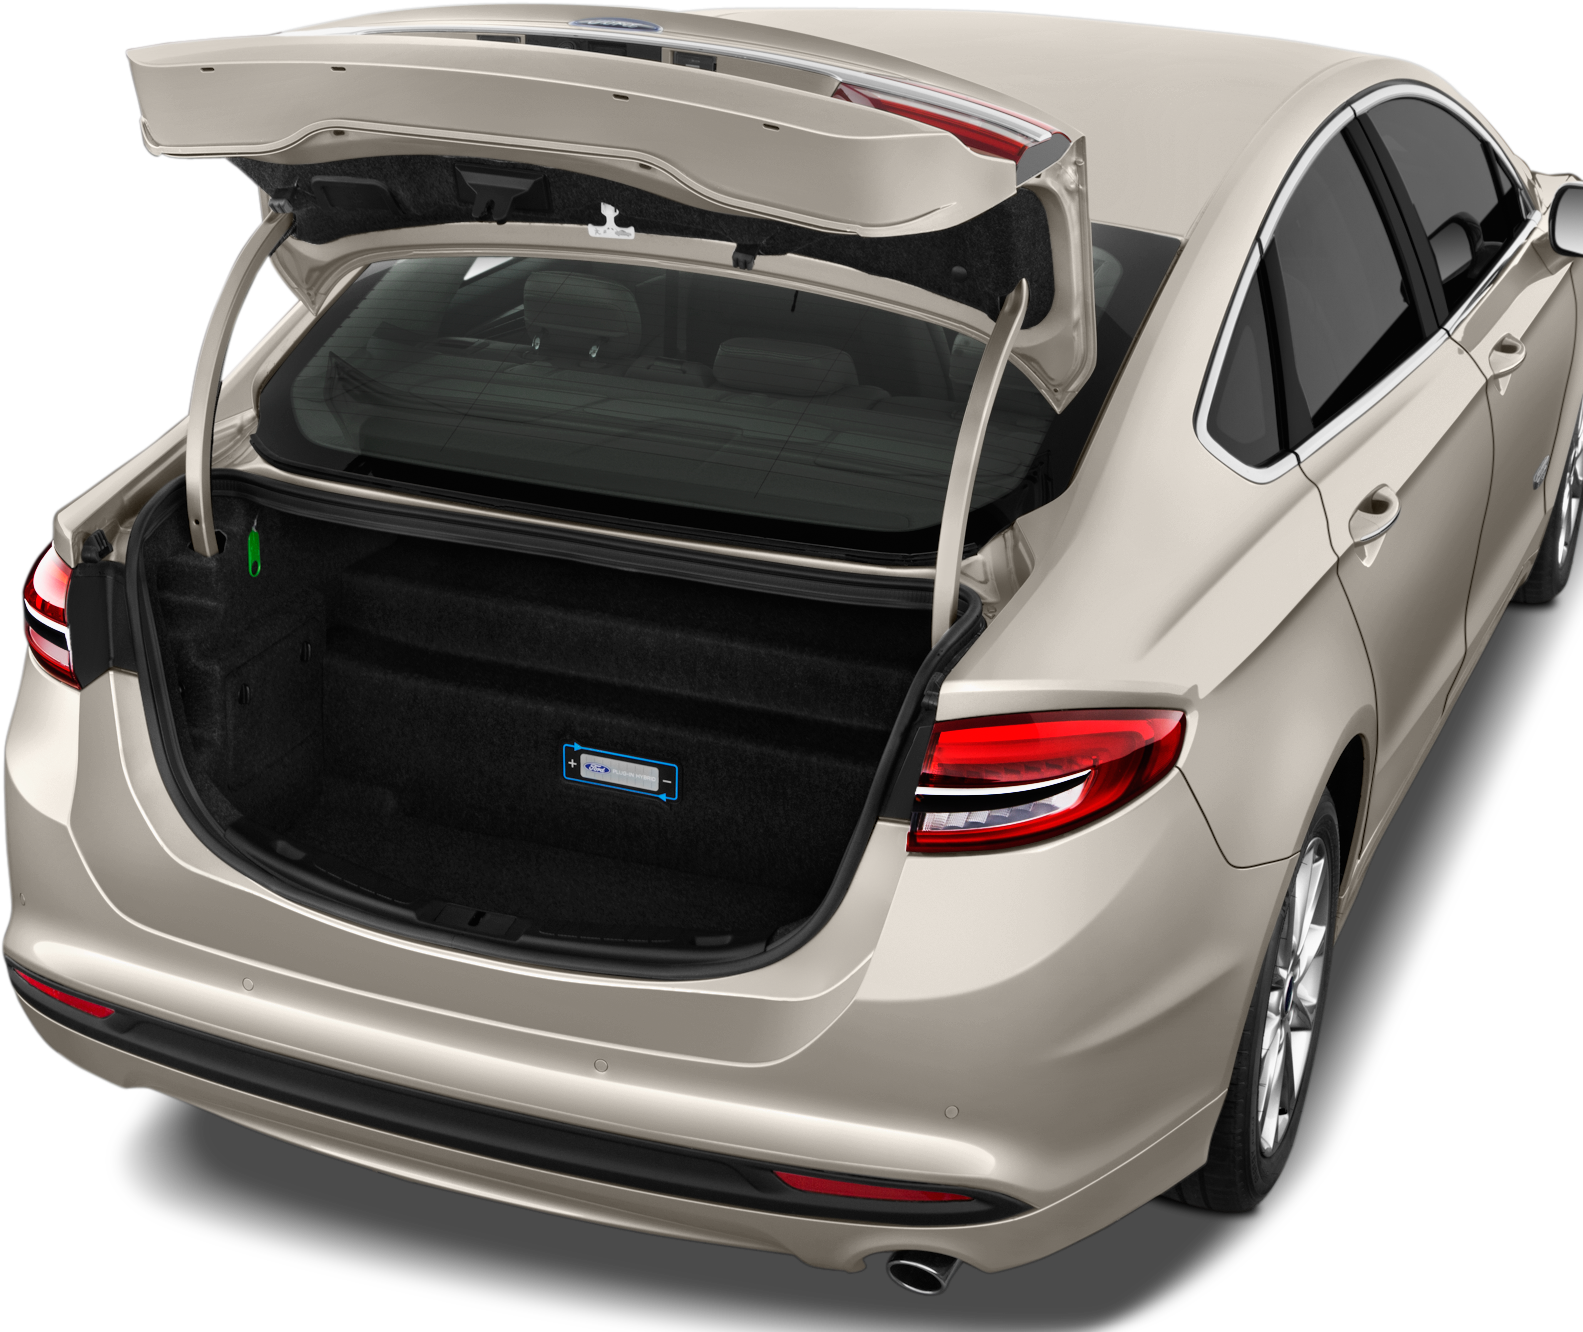 20 2017 Ford Fusion Energi Trunk E 2048x1360 Png